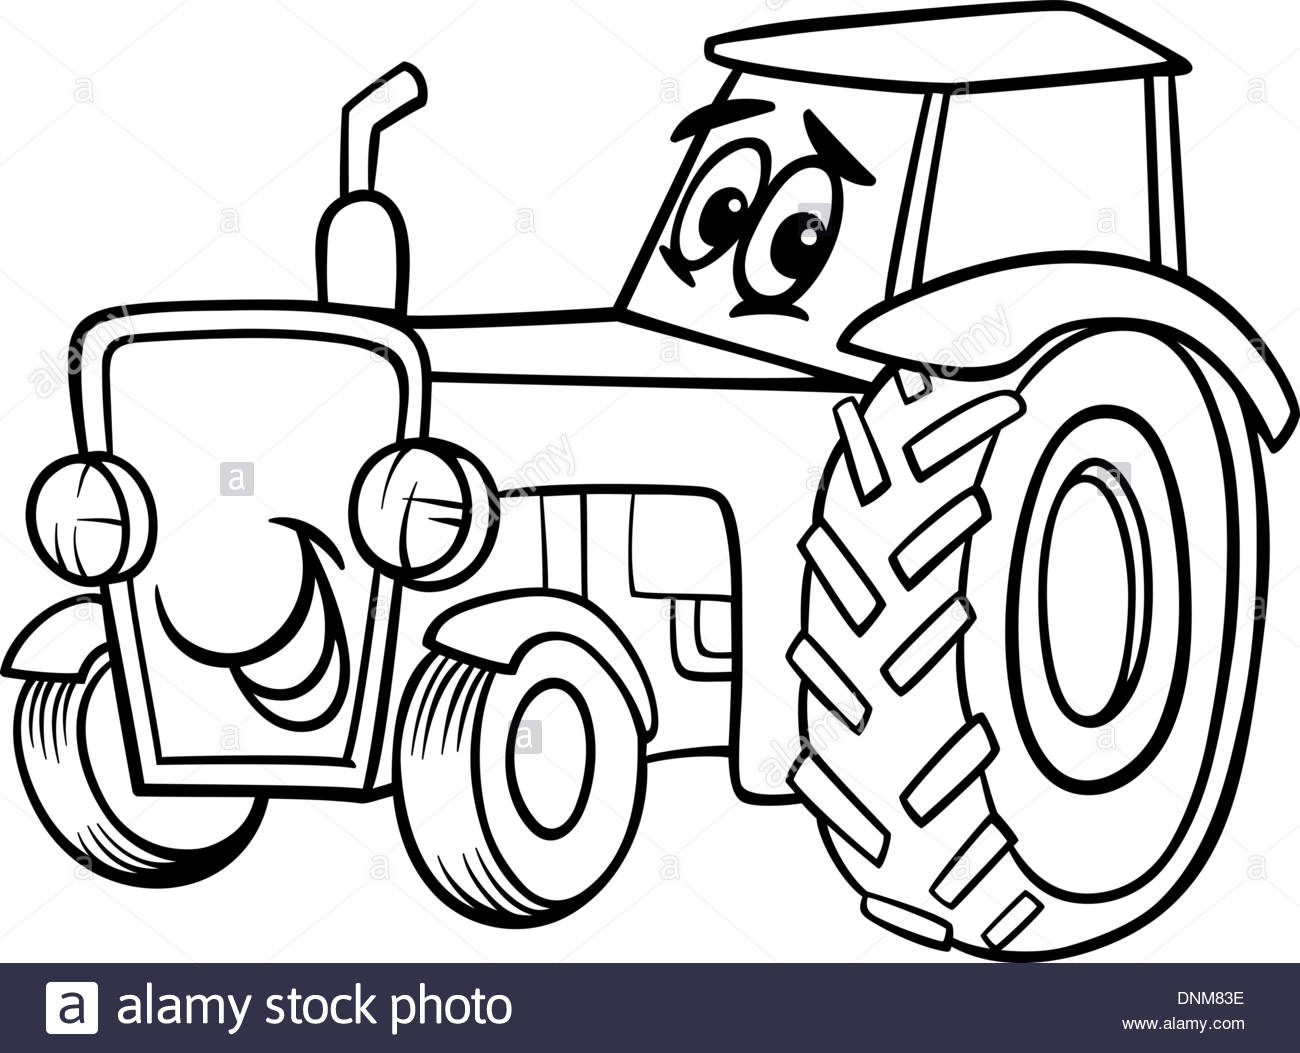 1300x1053 Black And White Cartoon Illustration Of Funny Farm Tractor Vehicle